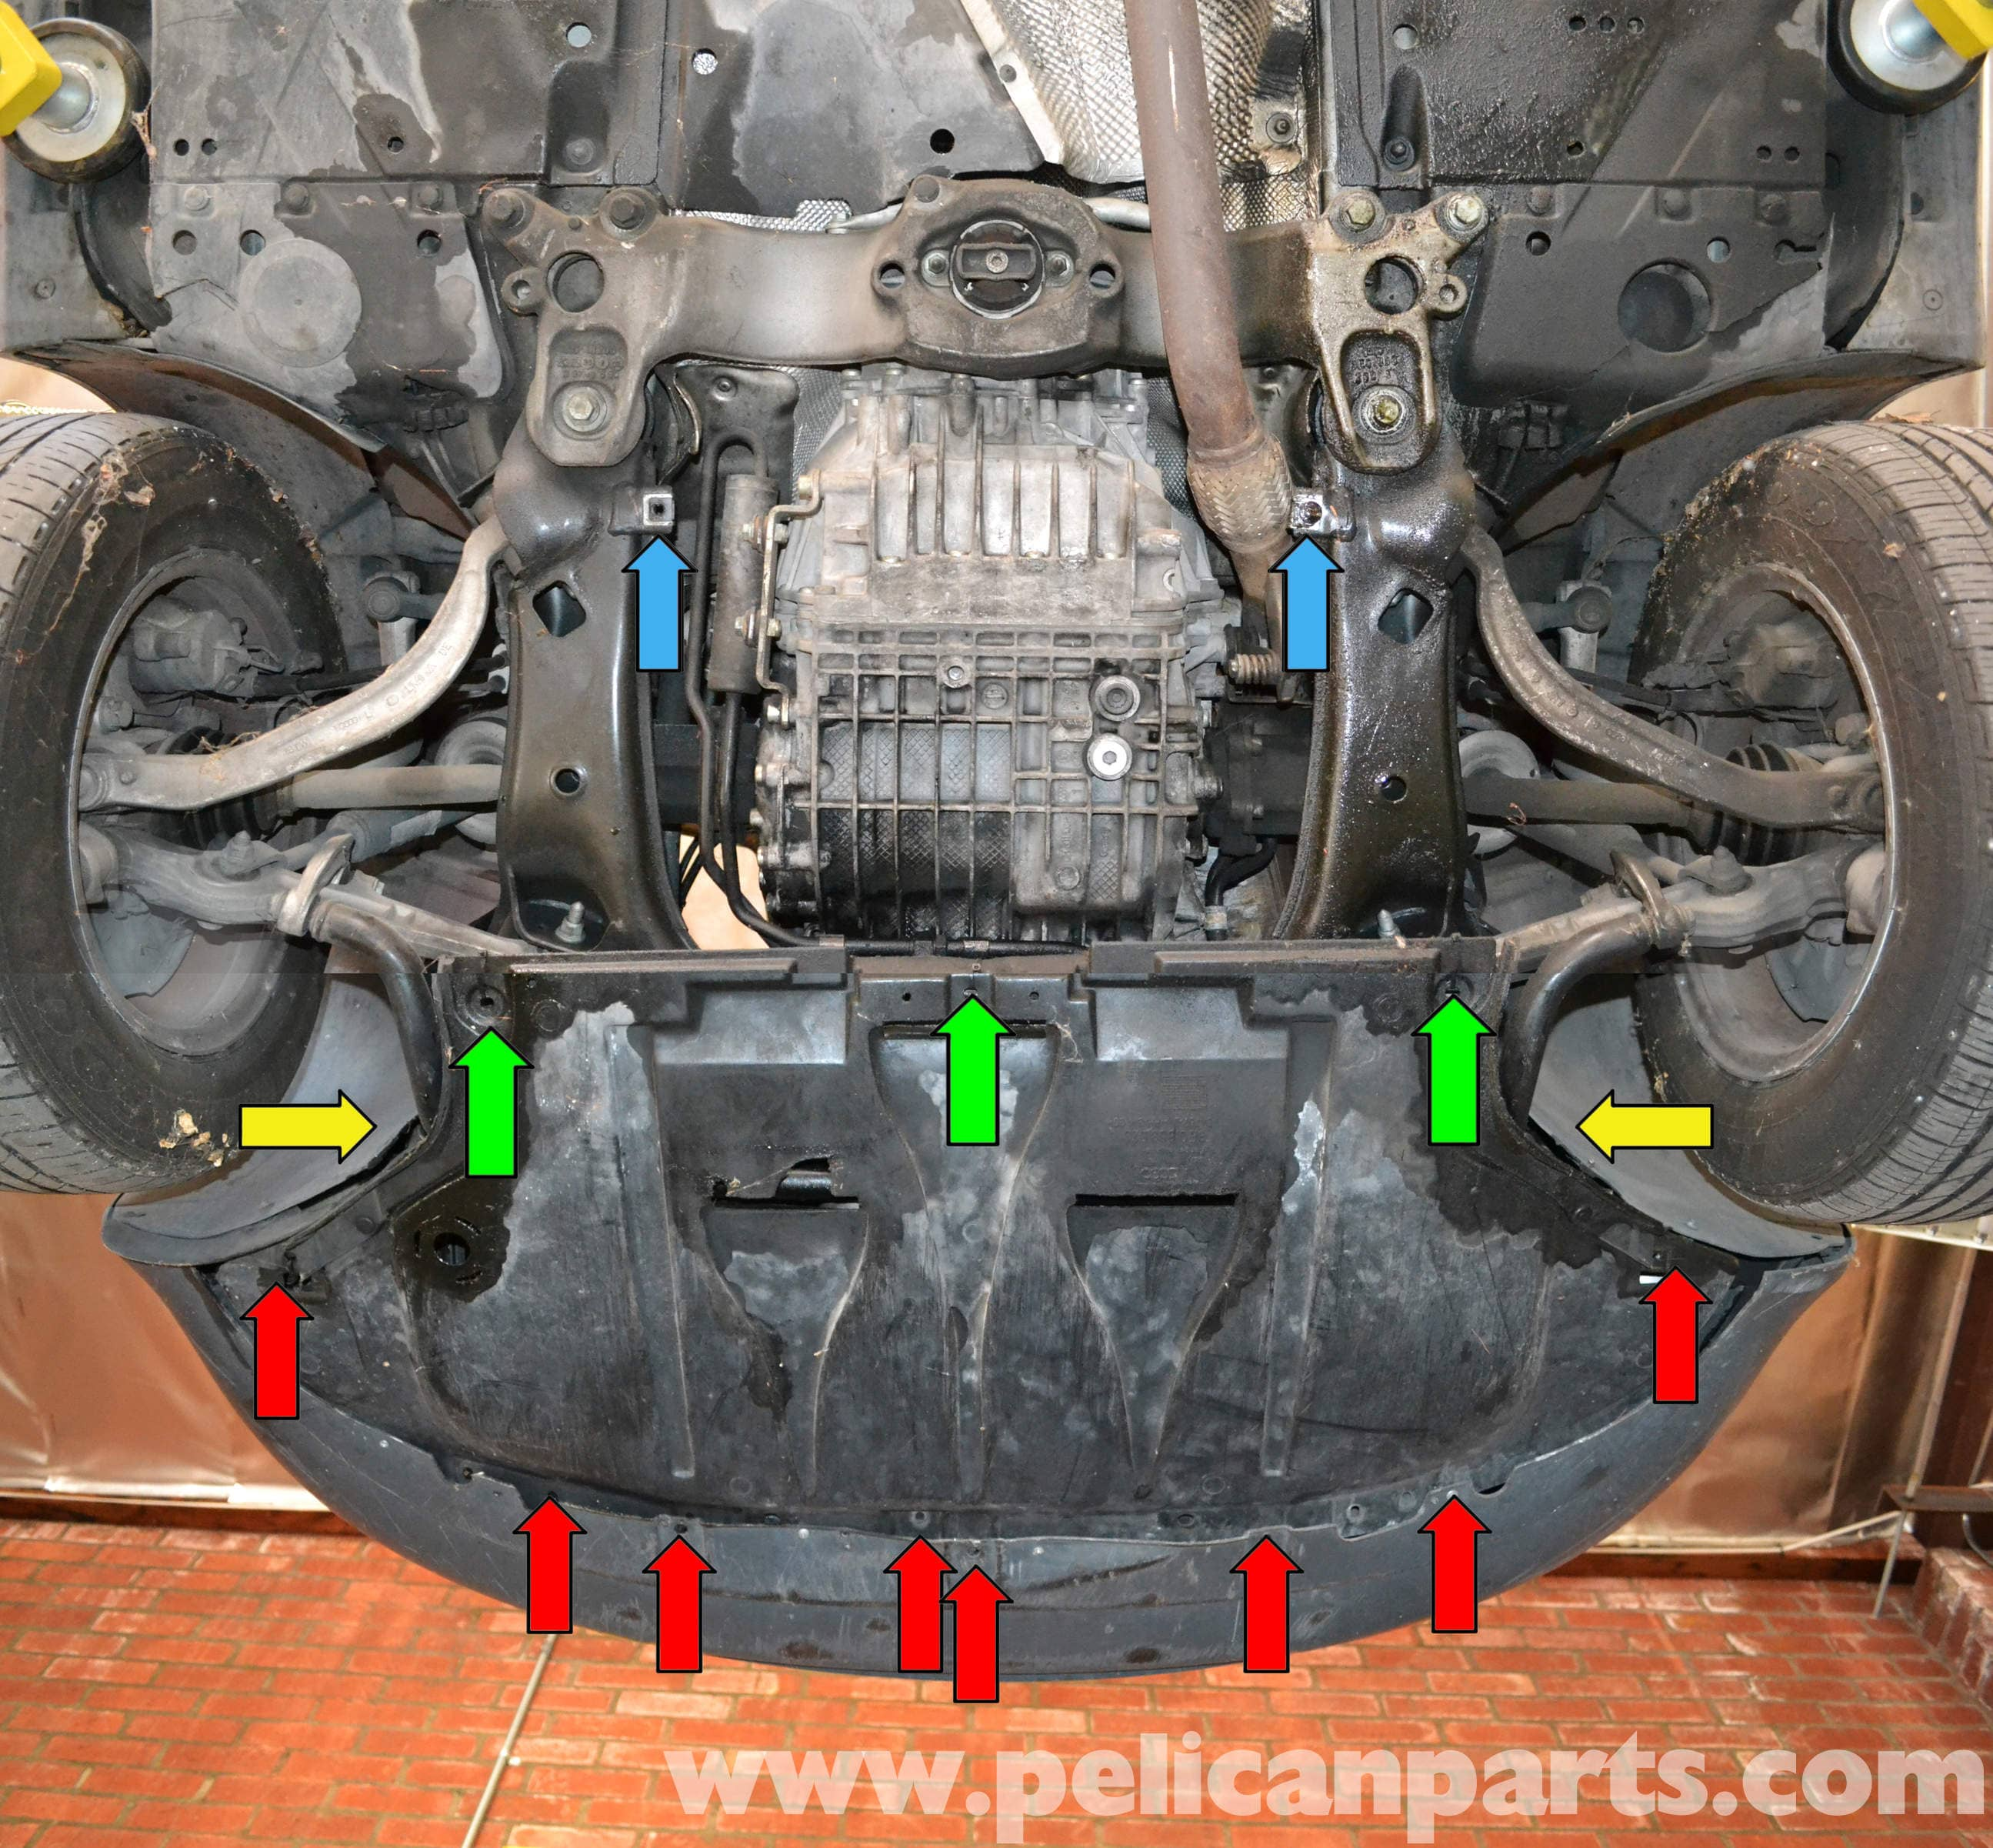 Audi A4 B6 Under Body Tray Removal 2002 2008 Pelican